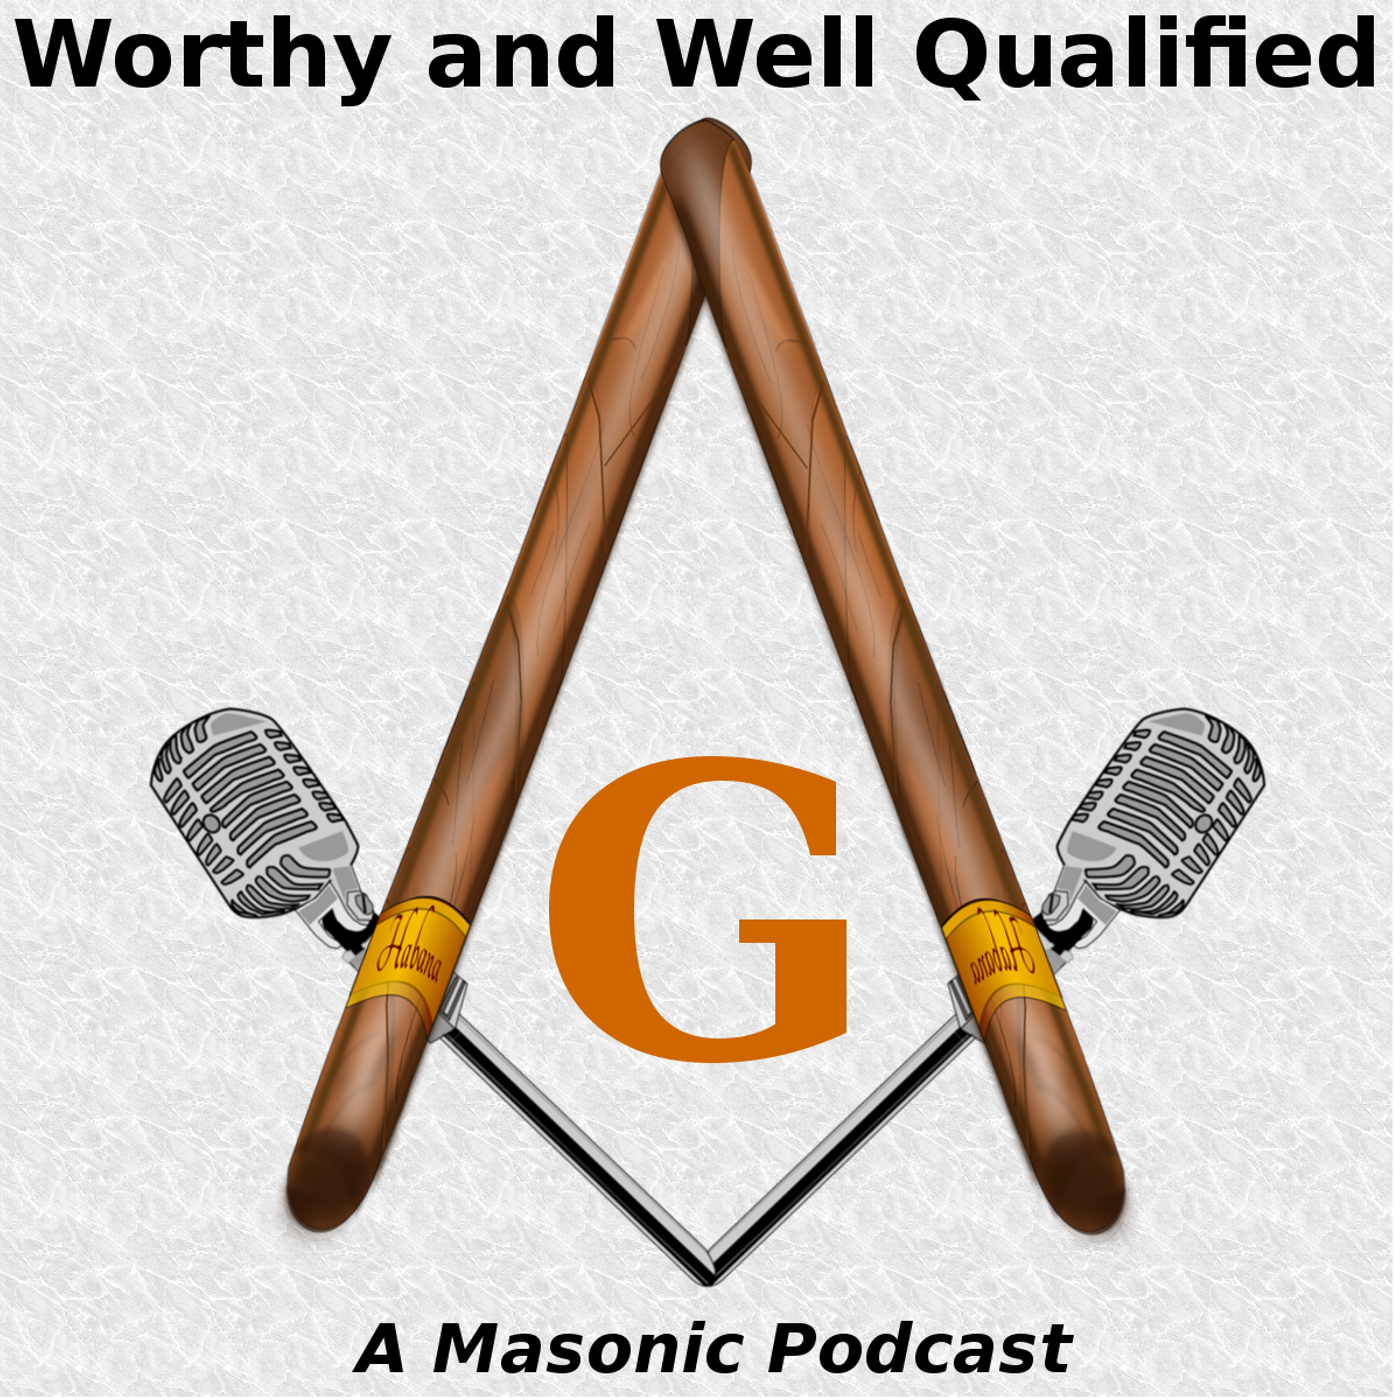 Worthy And Well Qualified - A Masonic Podcast logo